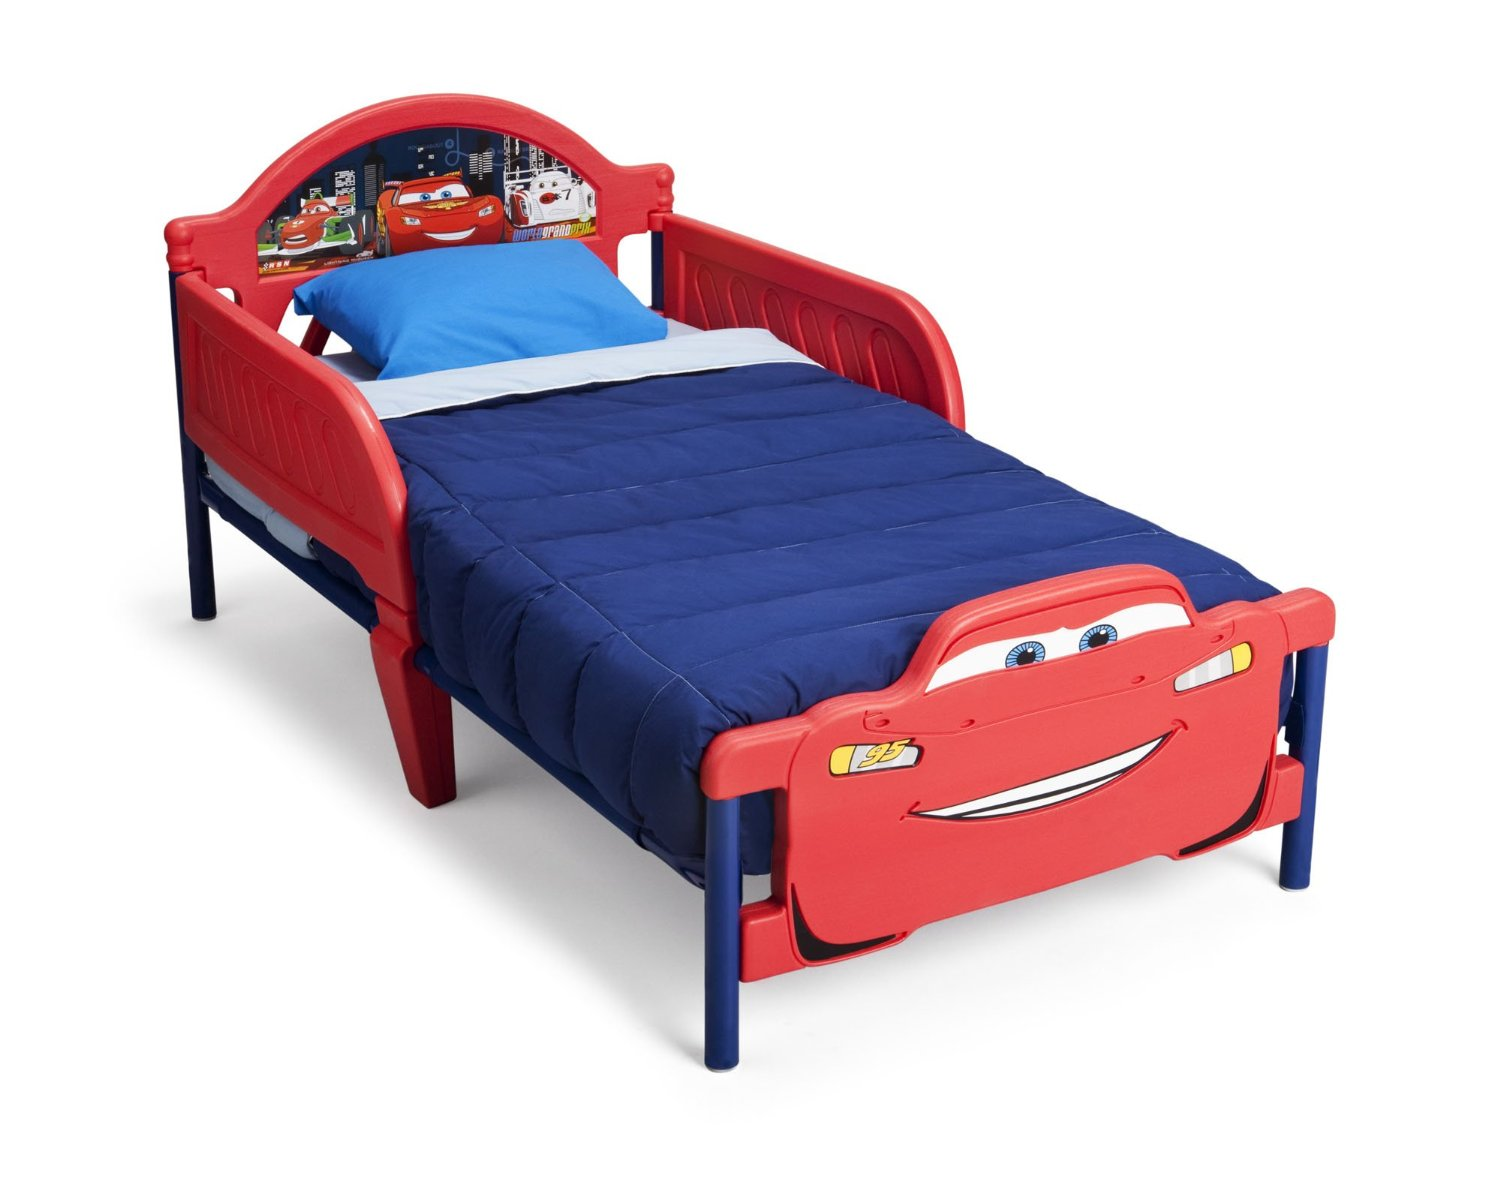 Reviewing the Delta Children Disney Pixar Cars Wood Toddler Bed 12